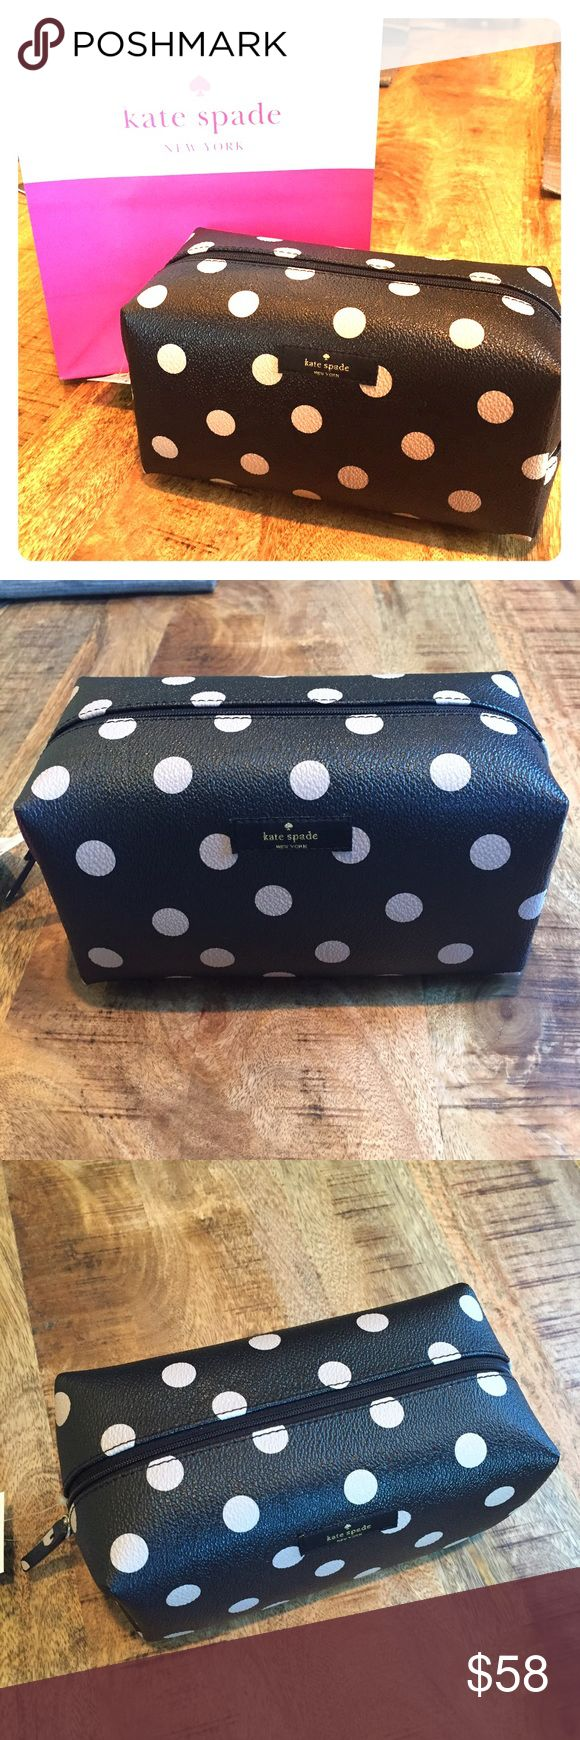 NWT Kate Spade travel cosmetic bag New with tag! Kate Spade classic design. Never go out of fashion. Large storage space. Fits traveling size shampoo, conditioner, make up.. Etc kate spade Bags Travel Bags